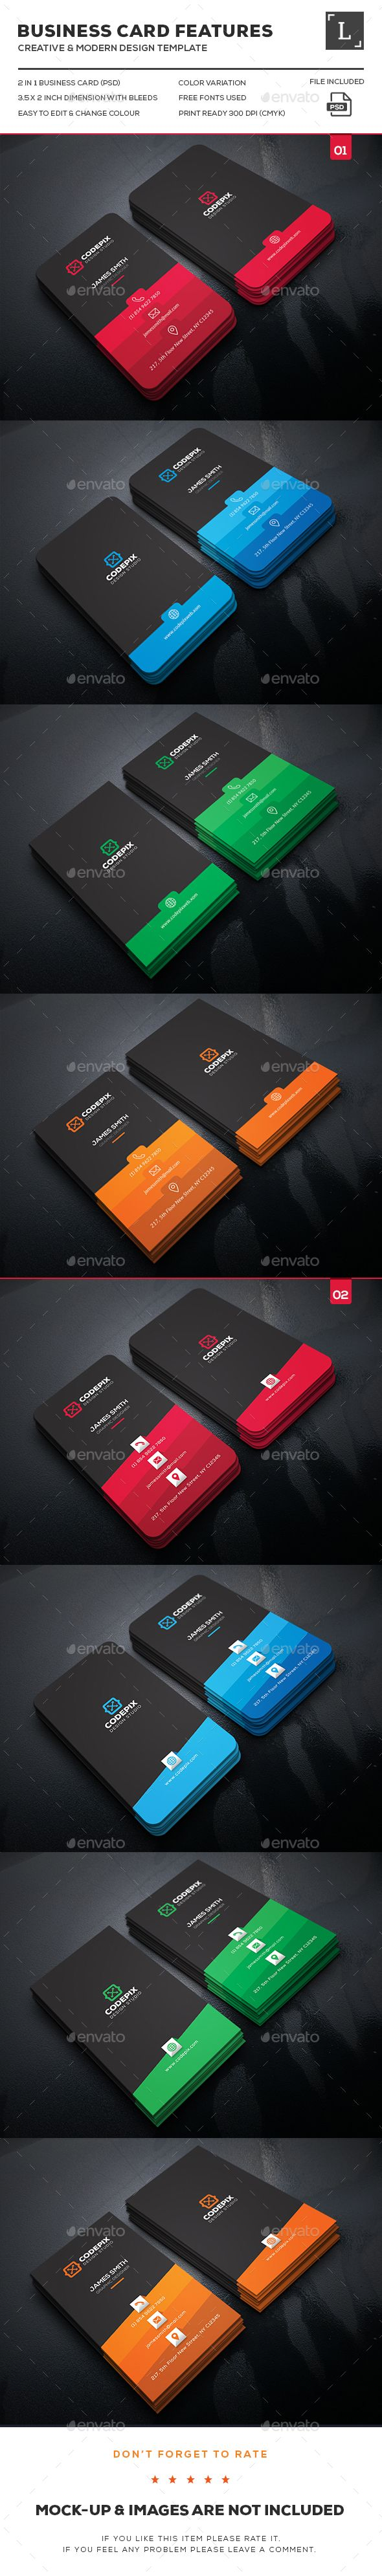 Shade Business Card Bundle Templates PSD. Download here: http://graphicriver.net/item/shade-business-card-bundle-/16345021?ref=ksioks